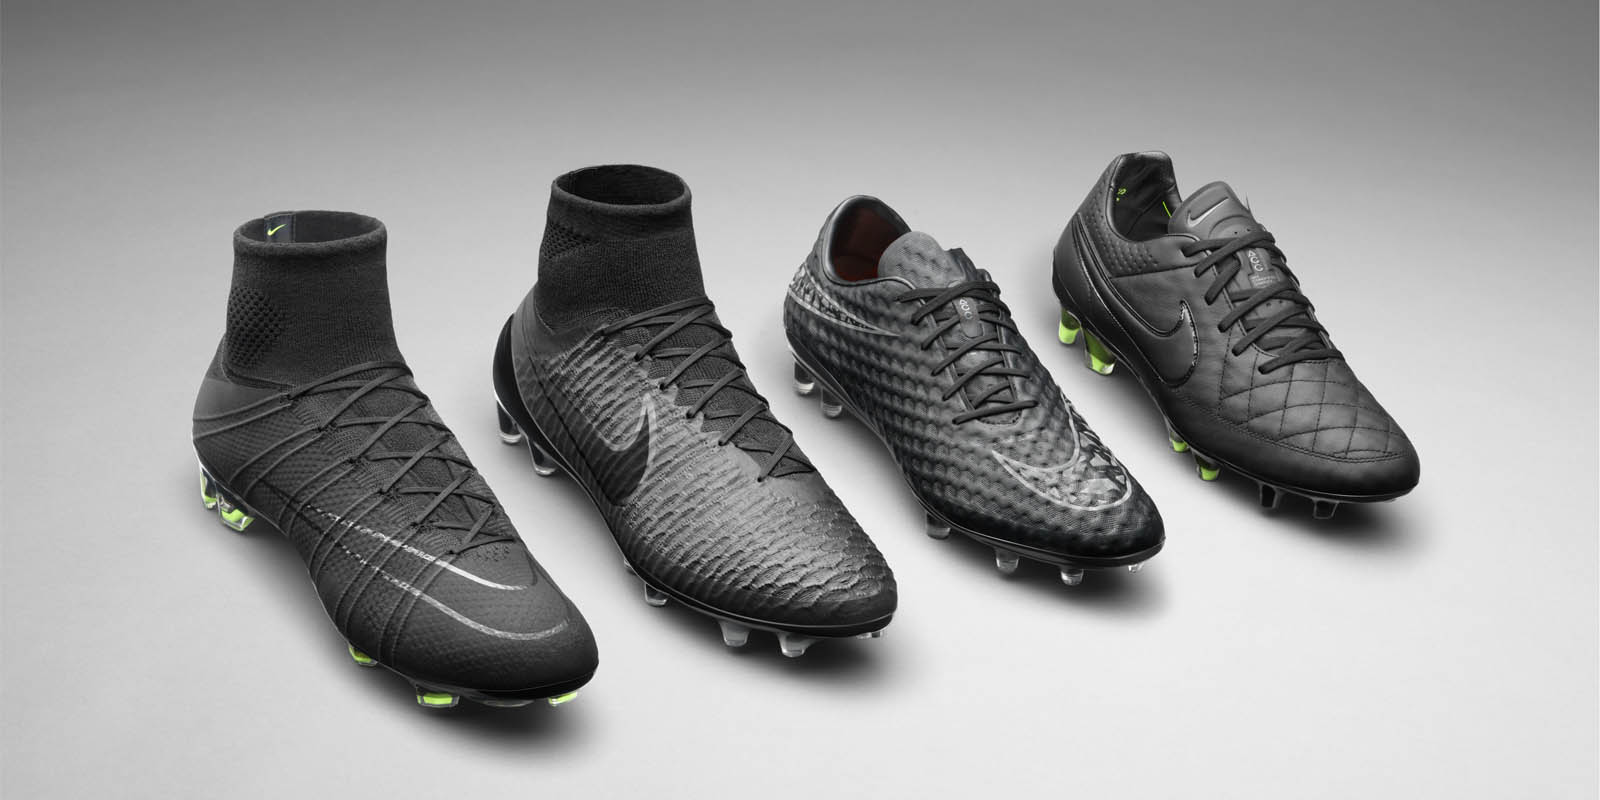 newest 4f952 89d84 The new Nike Academy Pack is a nod to the Nike Academy players. On 24 April  2015, Nike launched the all black Nike 2015 Football Boots Collection, ...